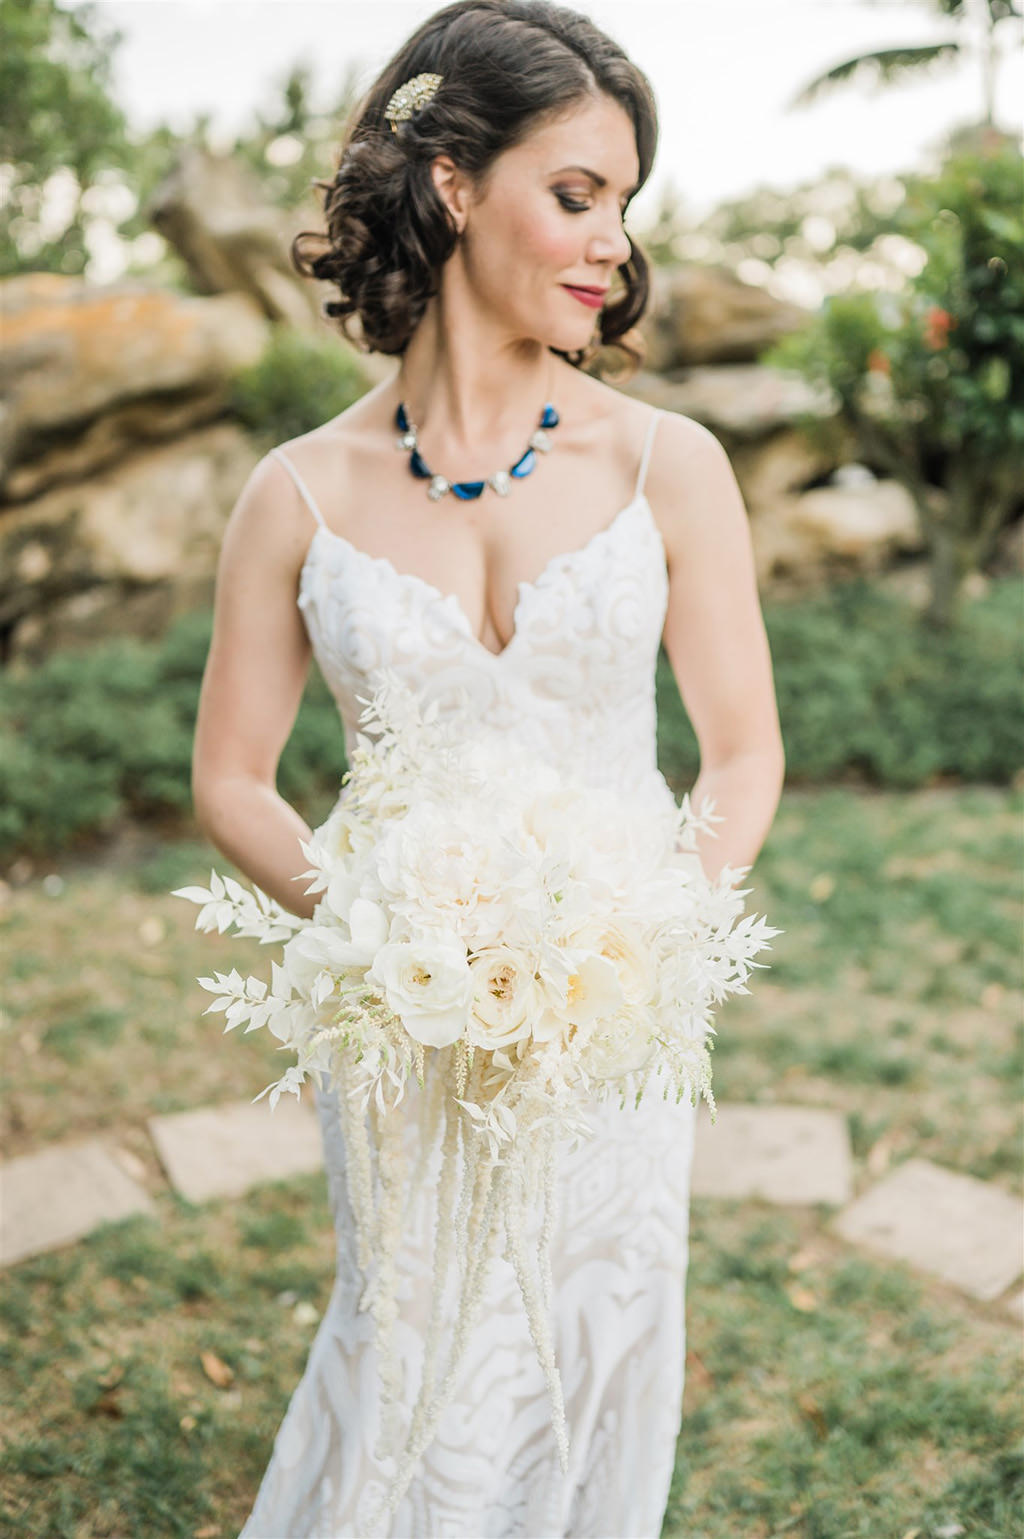 Florida Bride Beauty Wedding Portrait in Lace V Neckline Lace with Spaghetti Straps Fitted Hayley Paige Wedding Dress Holding All White Whimsy Floral Bouquet | Tampa Wedding Planner and Florist John Campbell Weddings